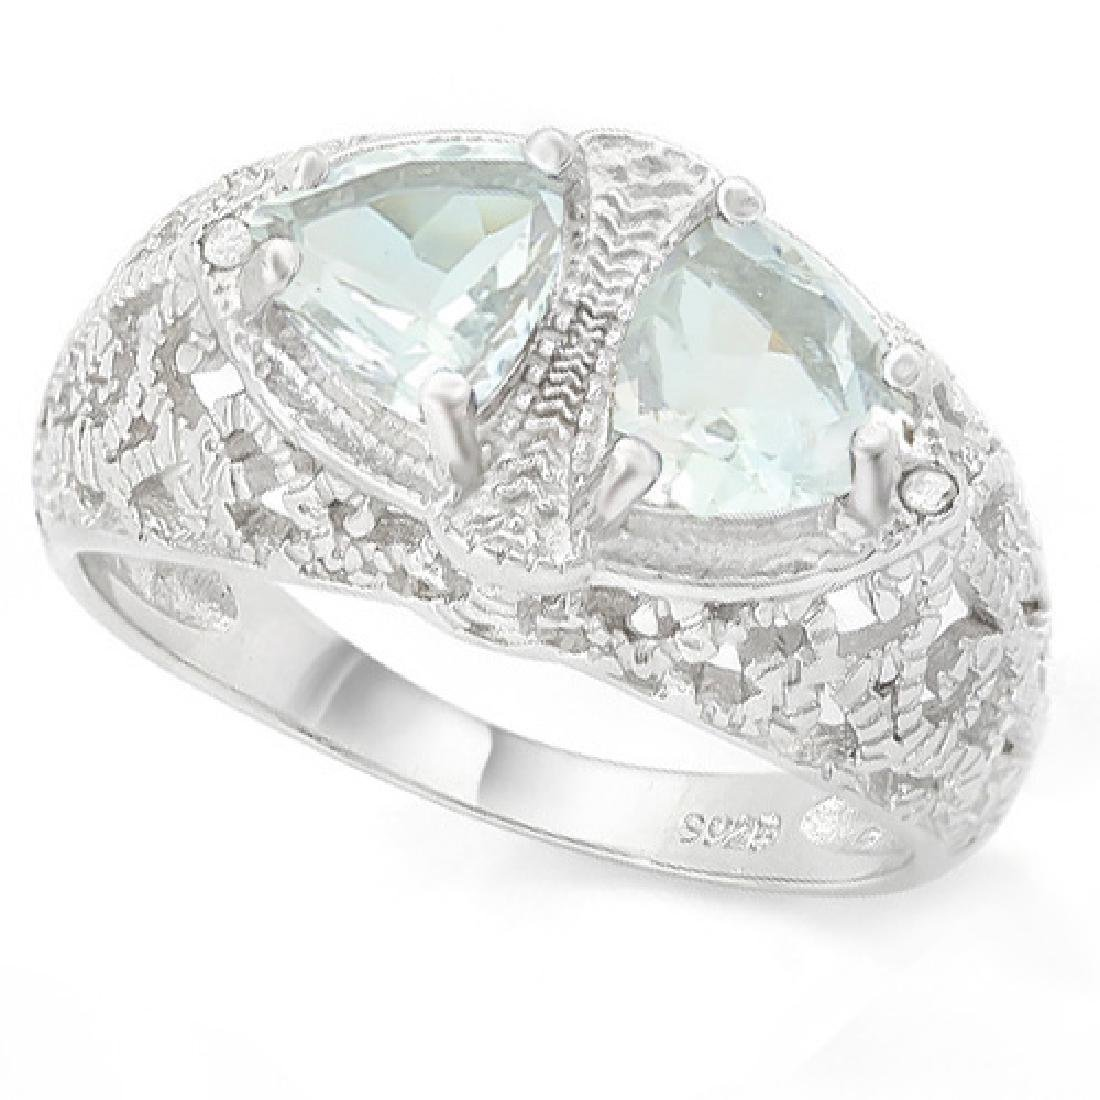 OUTSTANDING DOUBLE AQUAMARINE FILIGREE STERLING RG